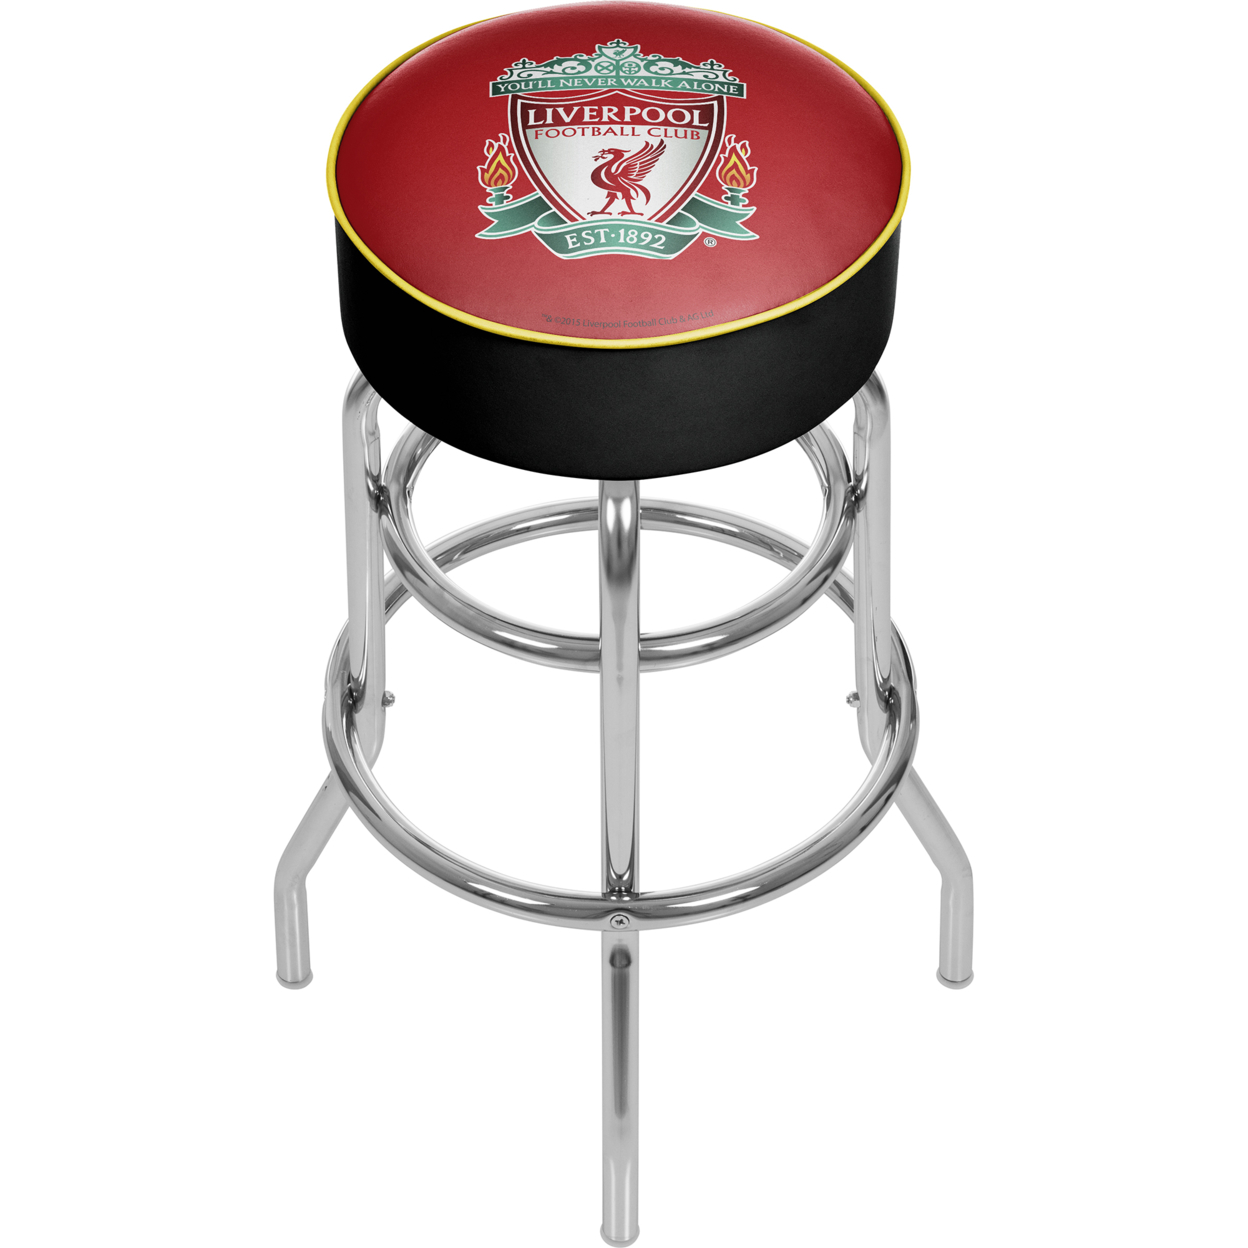 Premier League Liverpool Football Club Chrome Padded Swivel Bar Stool 30 Inches High монитор 24 asus vx248h